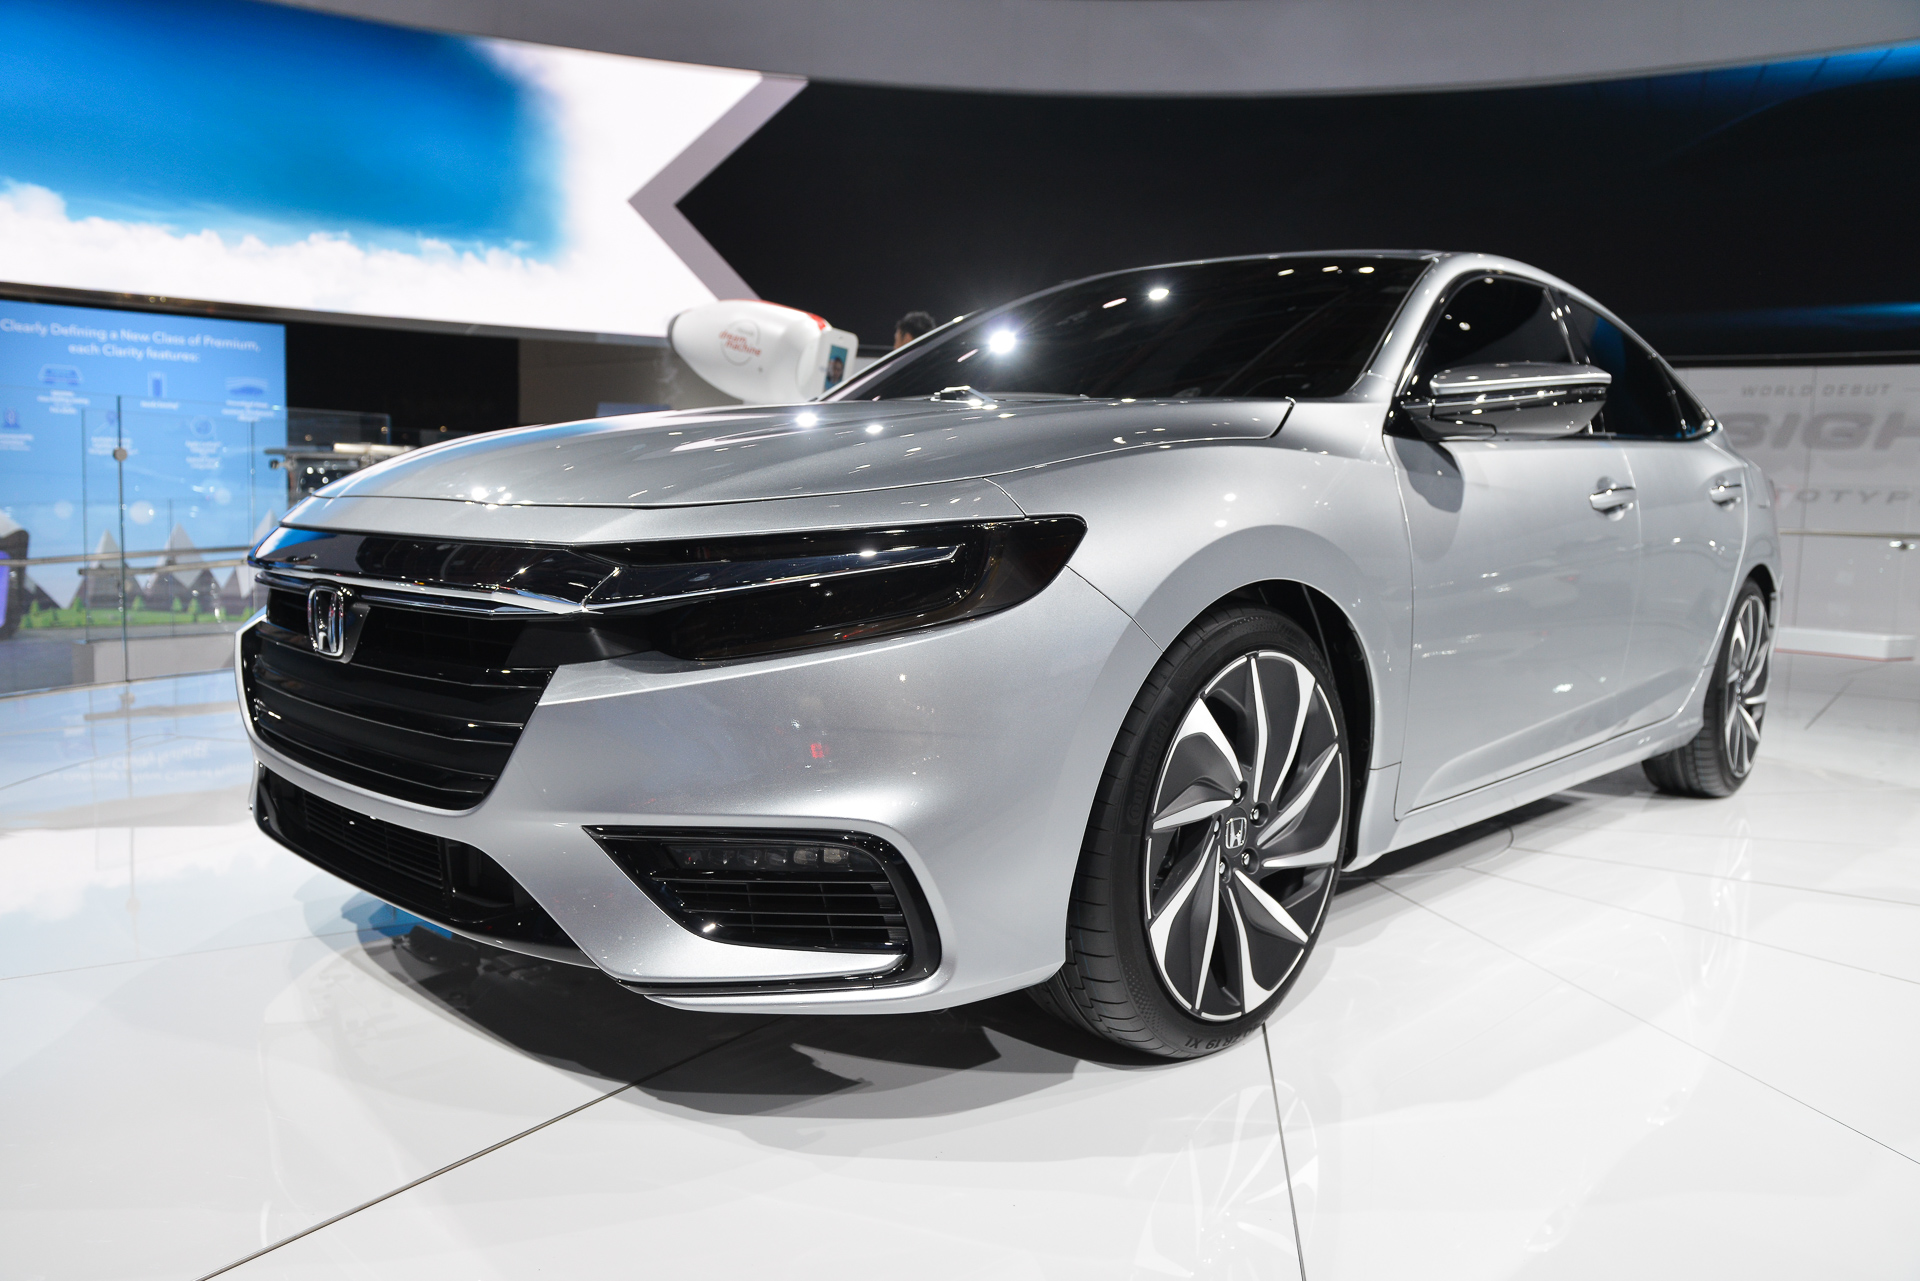 2019 honda insight video preview from detroit auto show. Black Bedroom Furniture Sets. Home Design Ideas